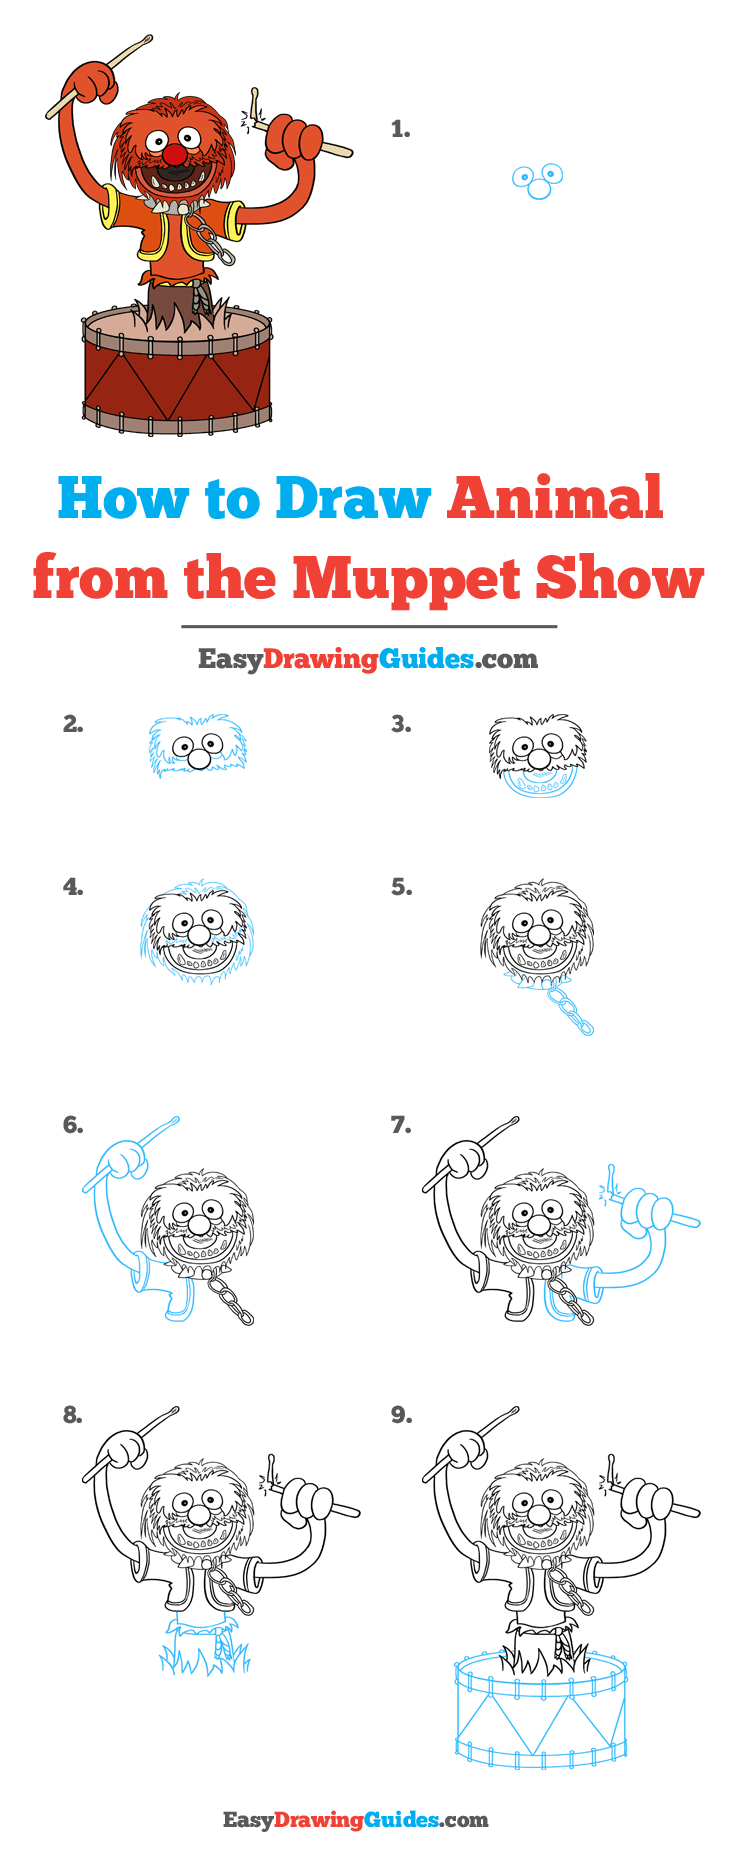 How to Draw Animal from the Muppet Show Step by Step Tutorial Image